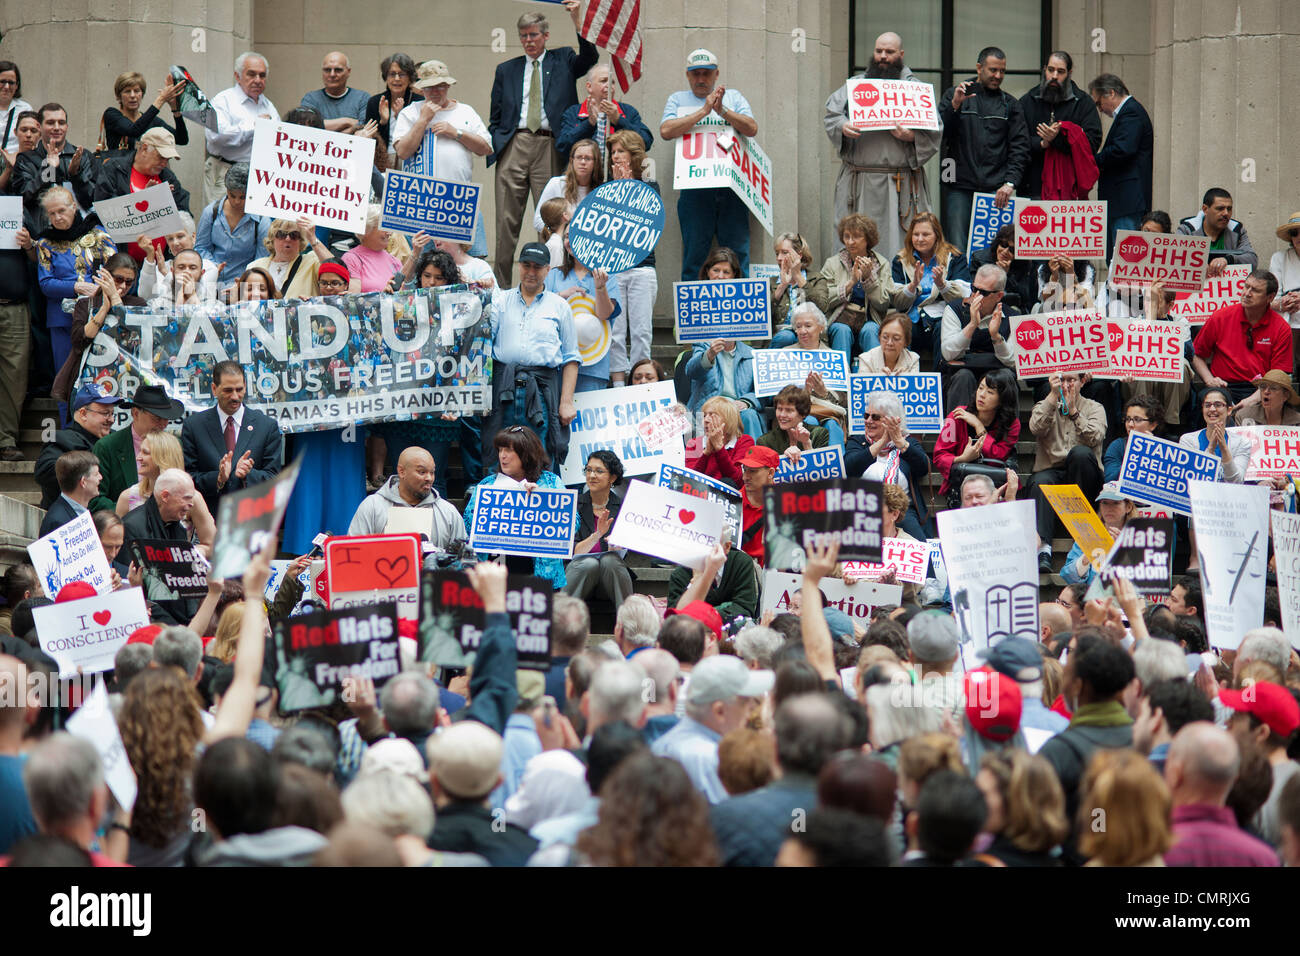 Members of various religious pro-life groups protest in  New York against the implementation of ObamaCare - Stock Image